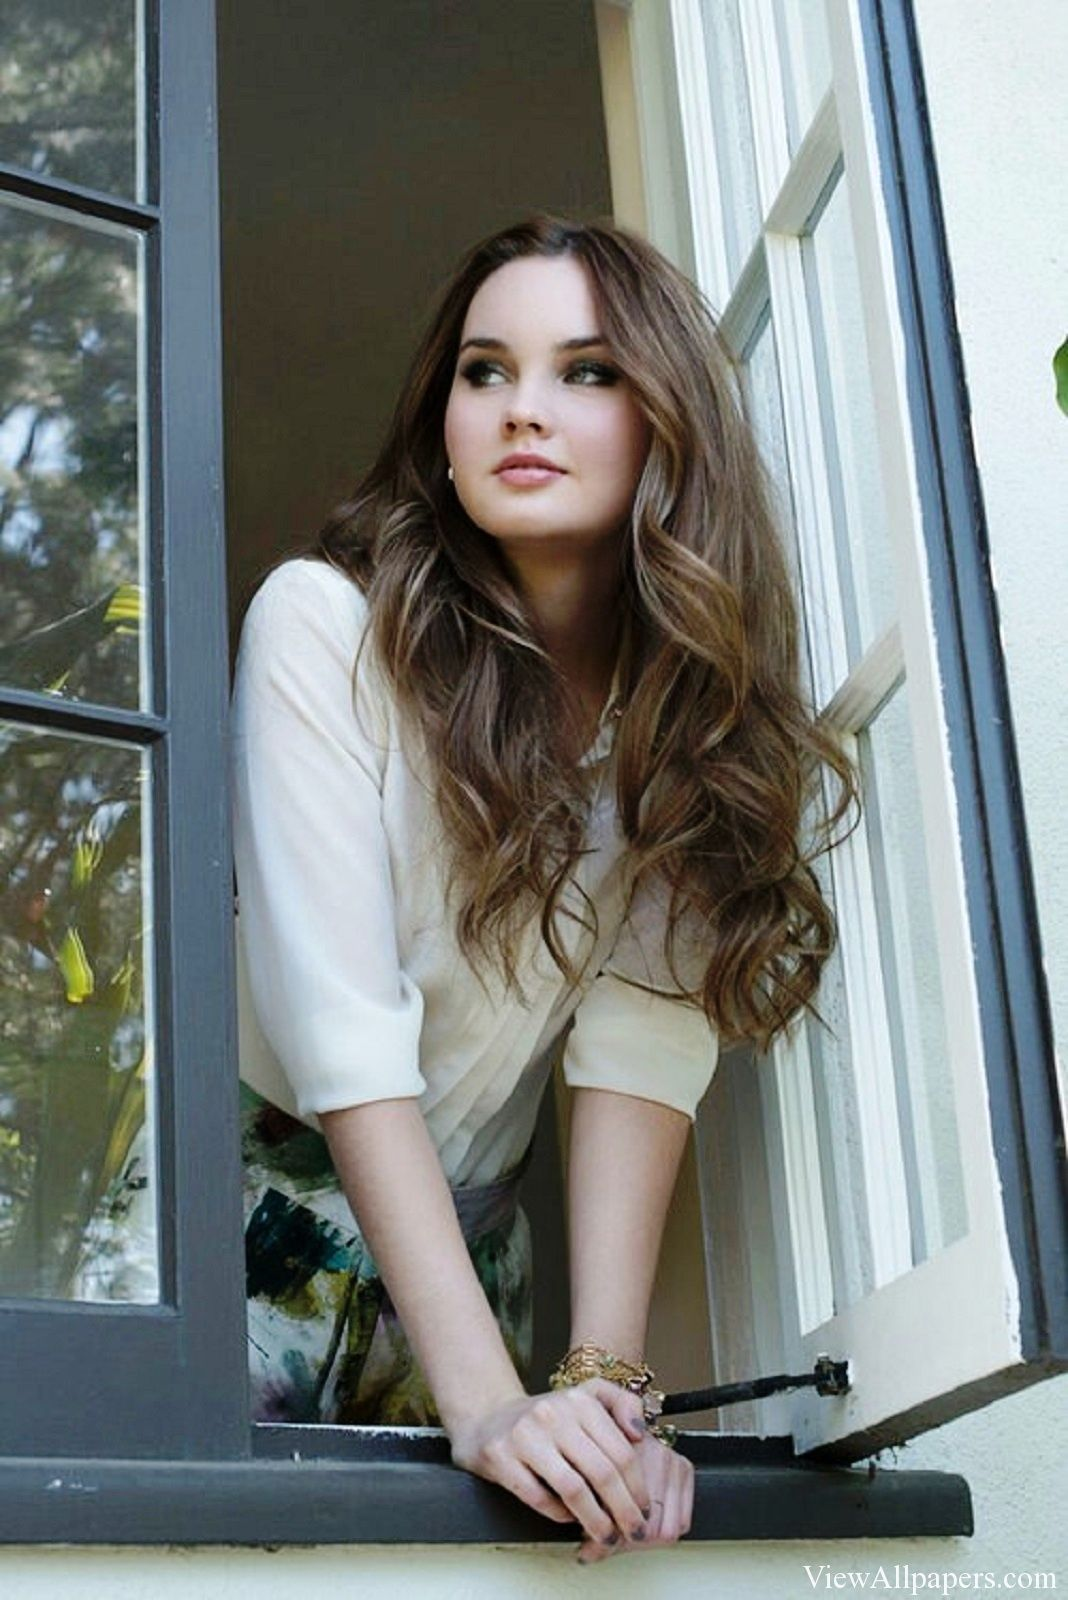 liana liberato, one of my favorite actresses. new but very talented